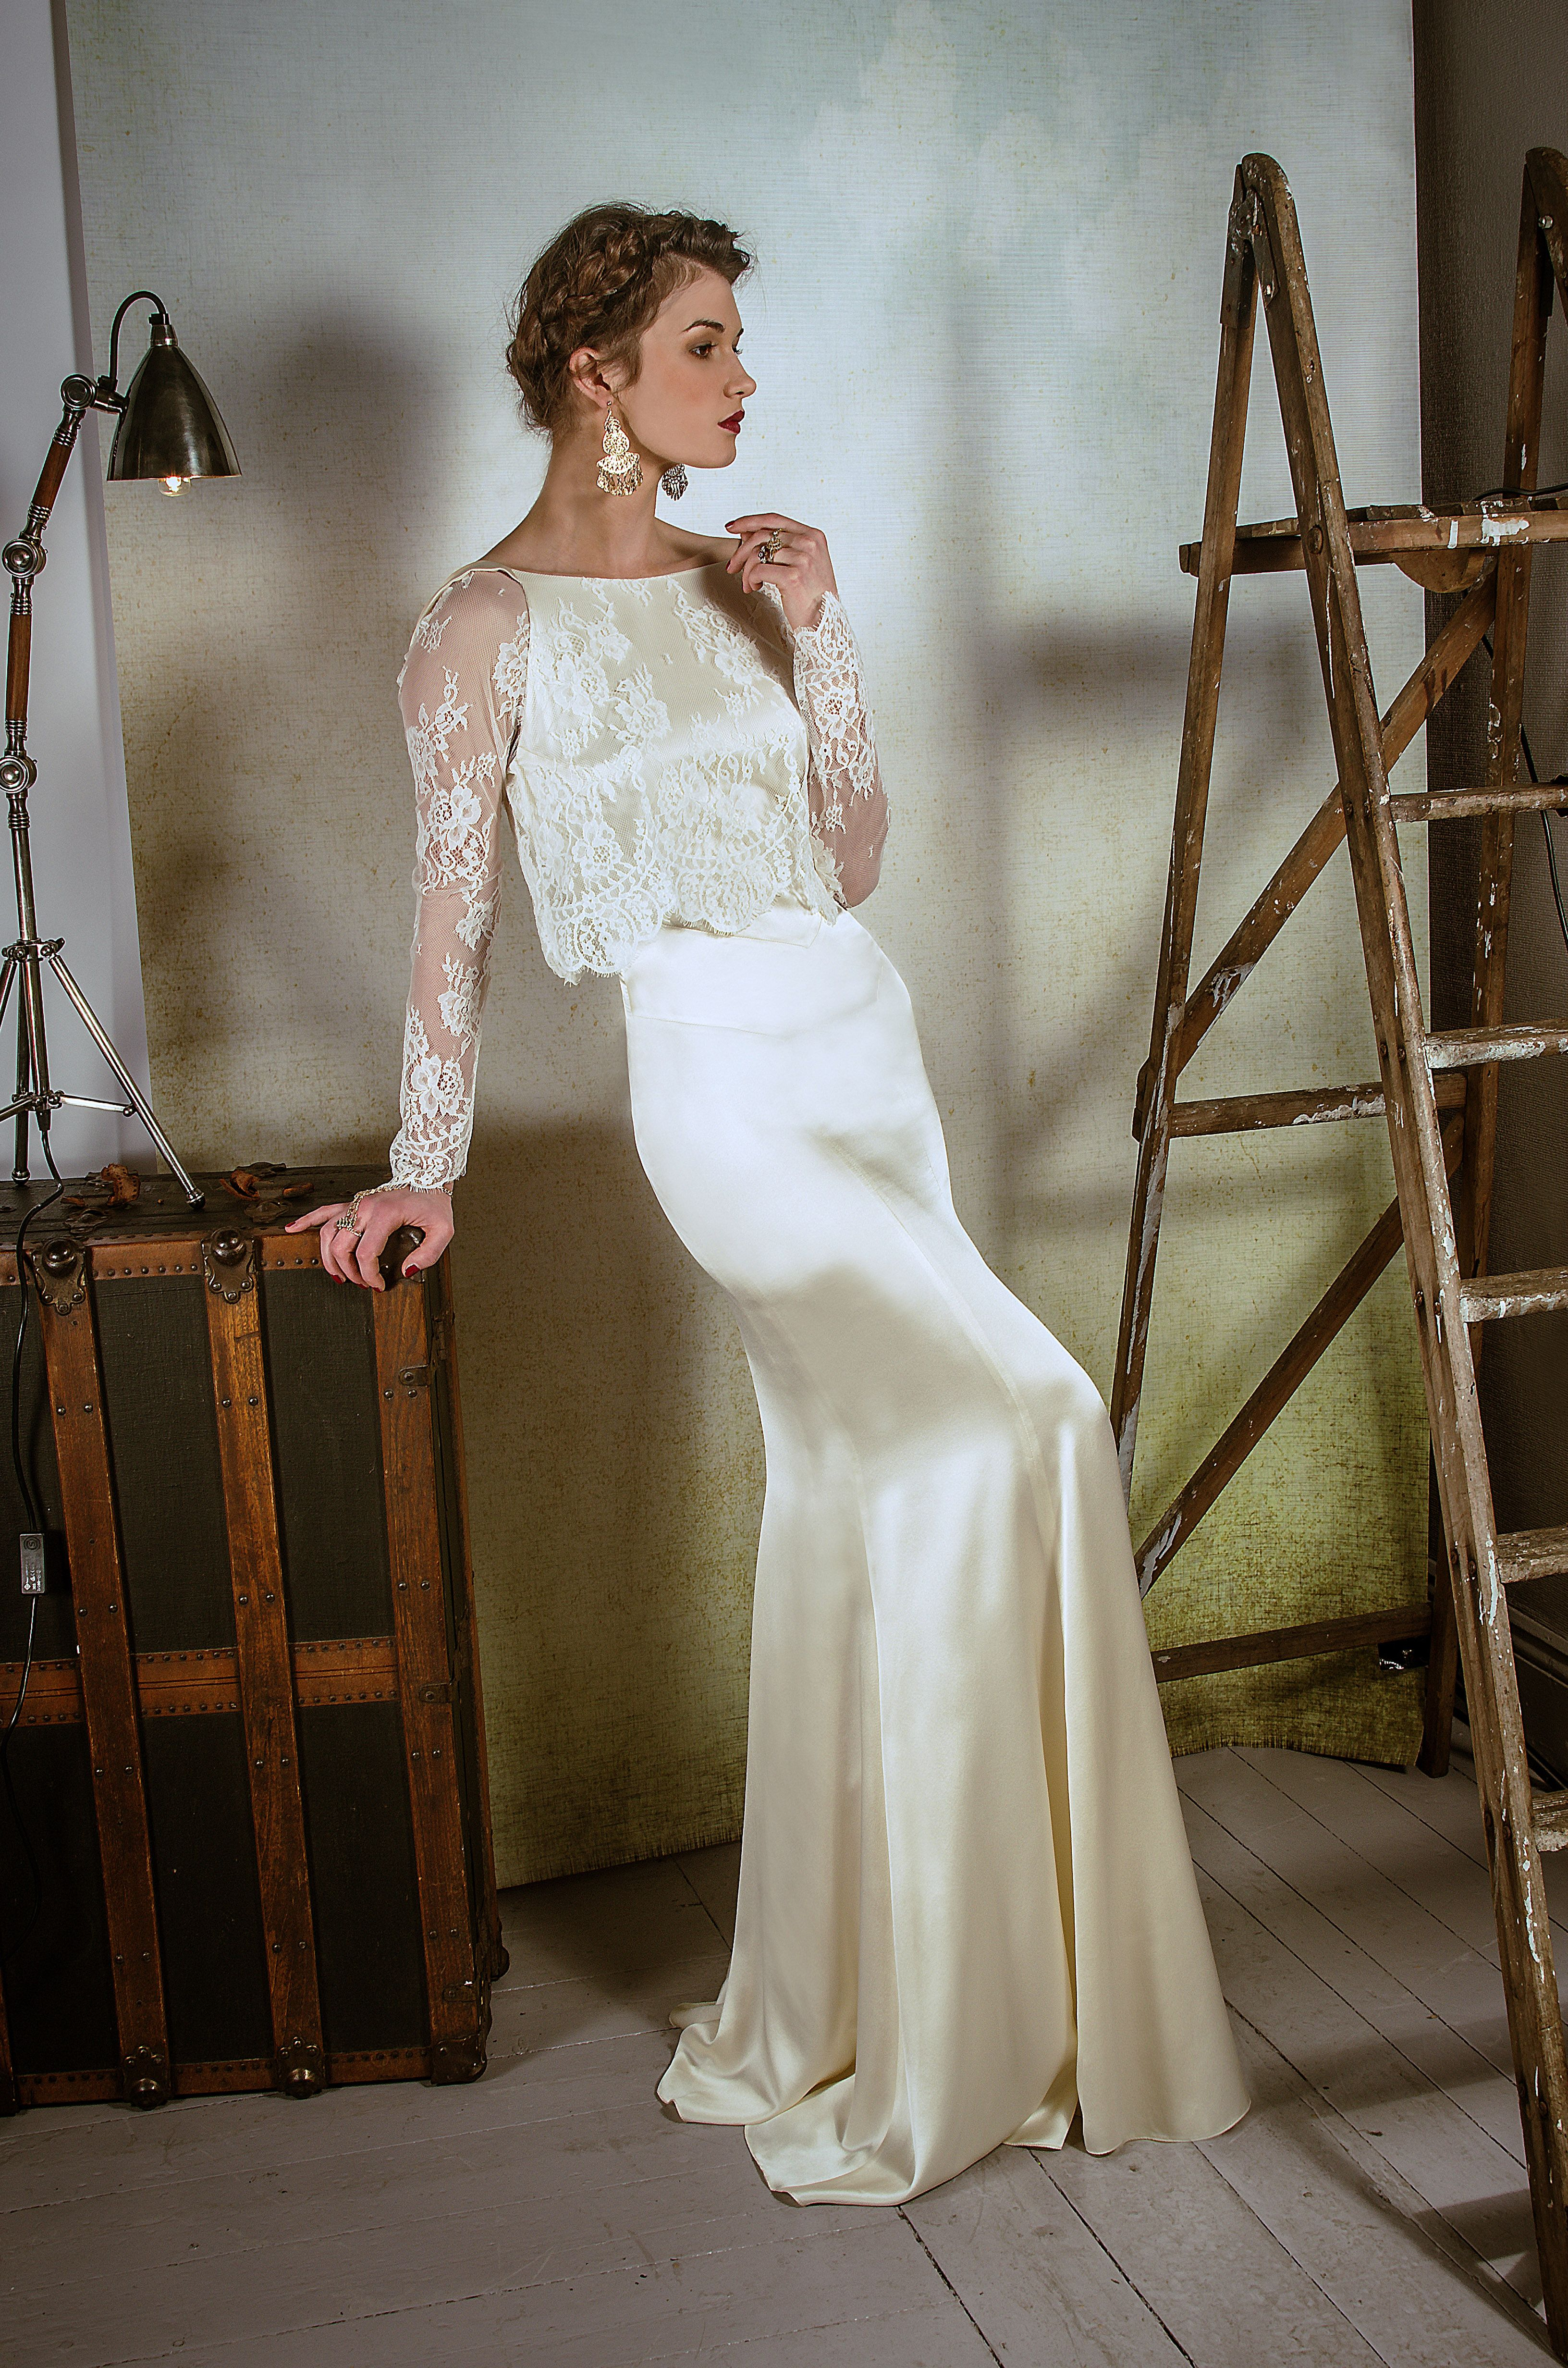 Ss14 belle bunty vintage inspired modern wedding dresses for Modern vintage lace wedding dress